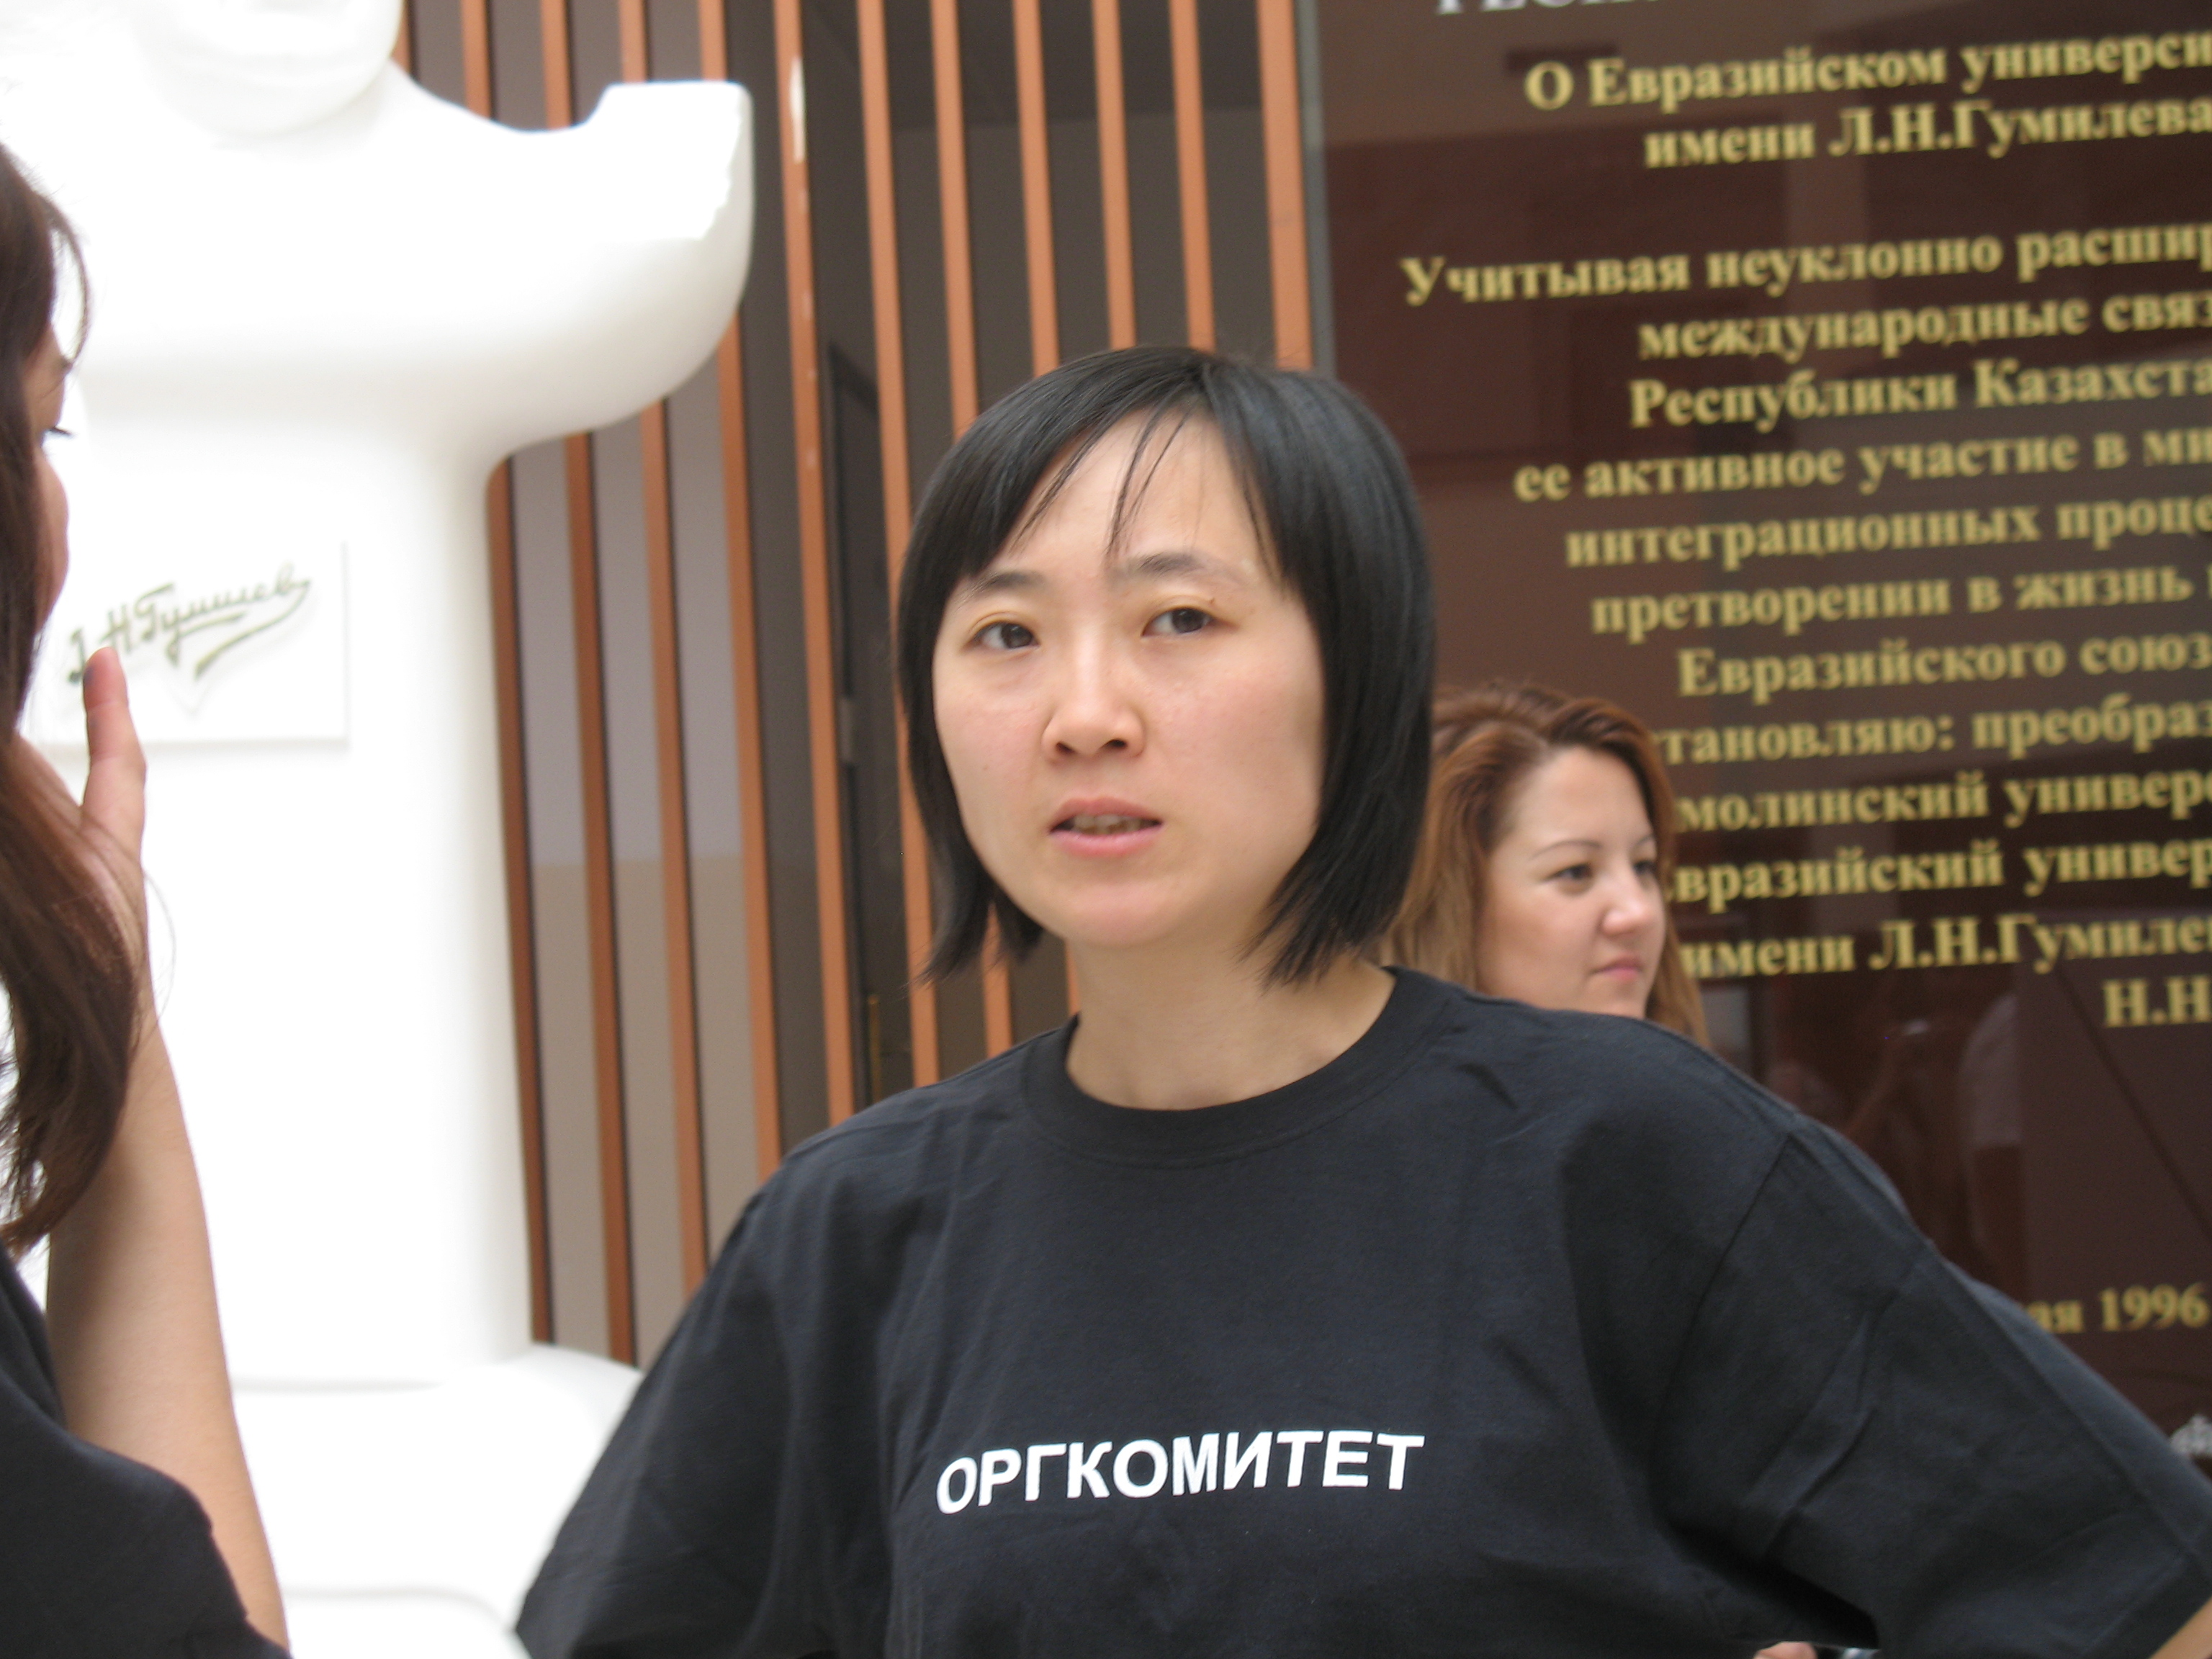 Vera Kim at Social Camp Astana, a national conference of non-profit organizations, in 2010. Photo courtesy of Vera Kim